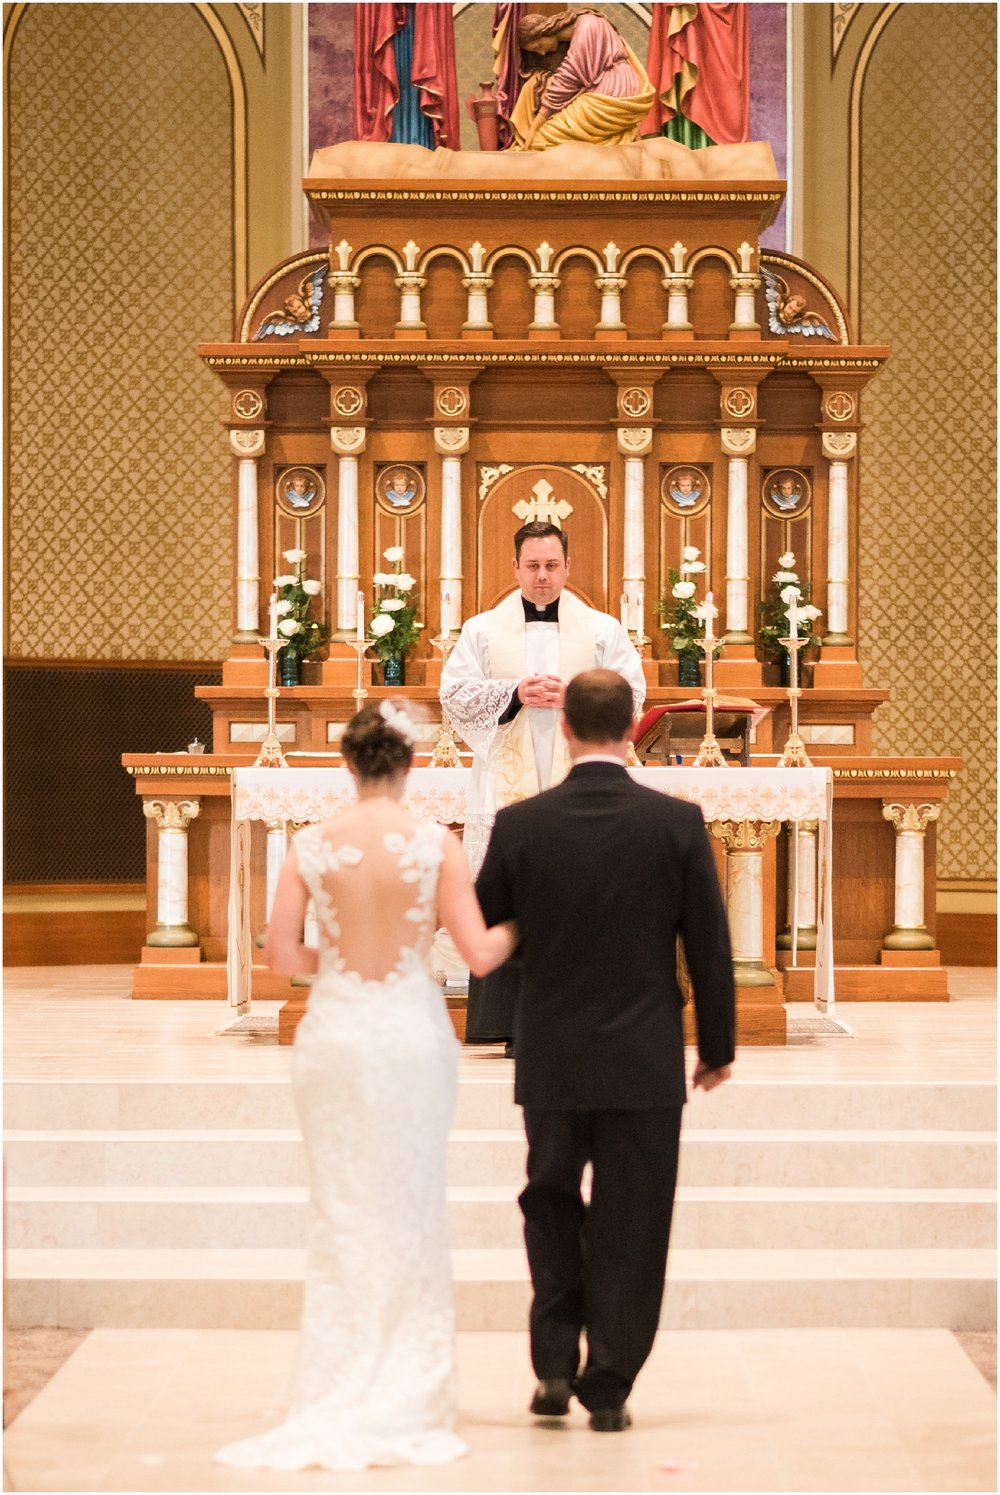 WISCONSIN DELLS WEDDING PHOTOGRAPHER | ST. CECILIA CATHOLIC CHURCH | WISCONSIN DELLS, WI | WEDDING_0225.jpg